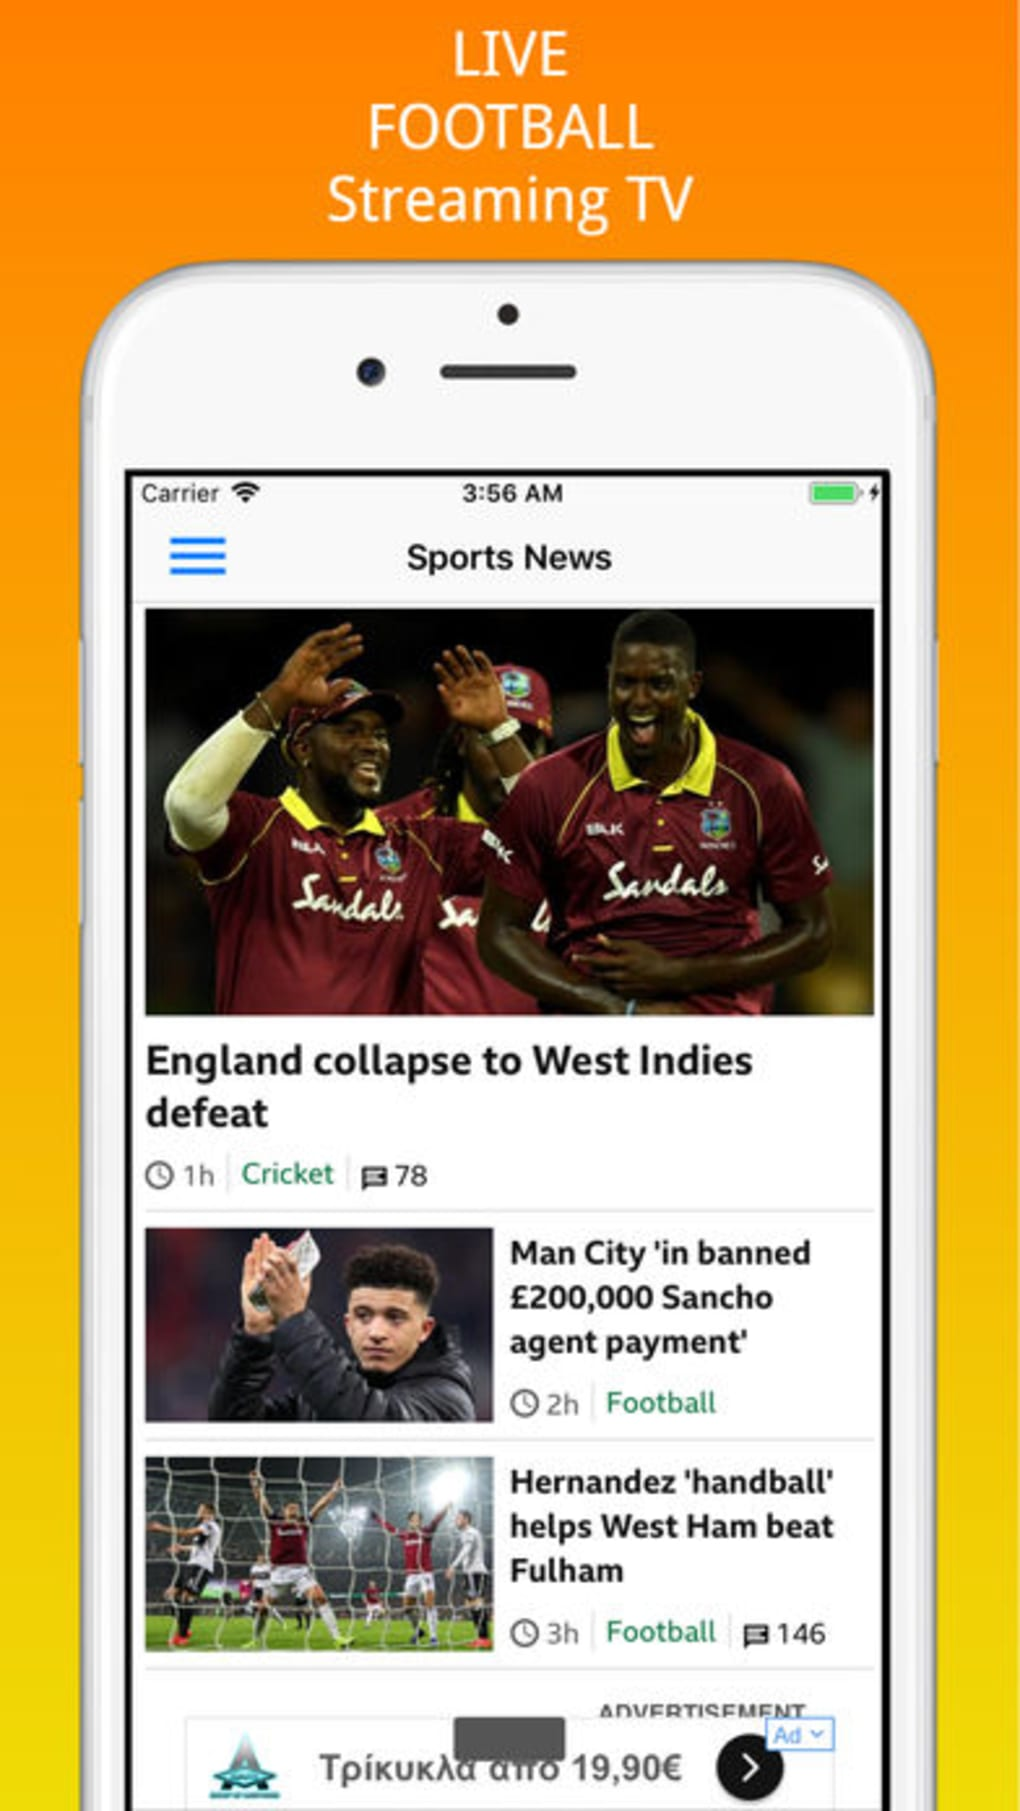 watch live football streaming free iphone